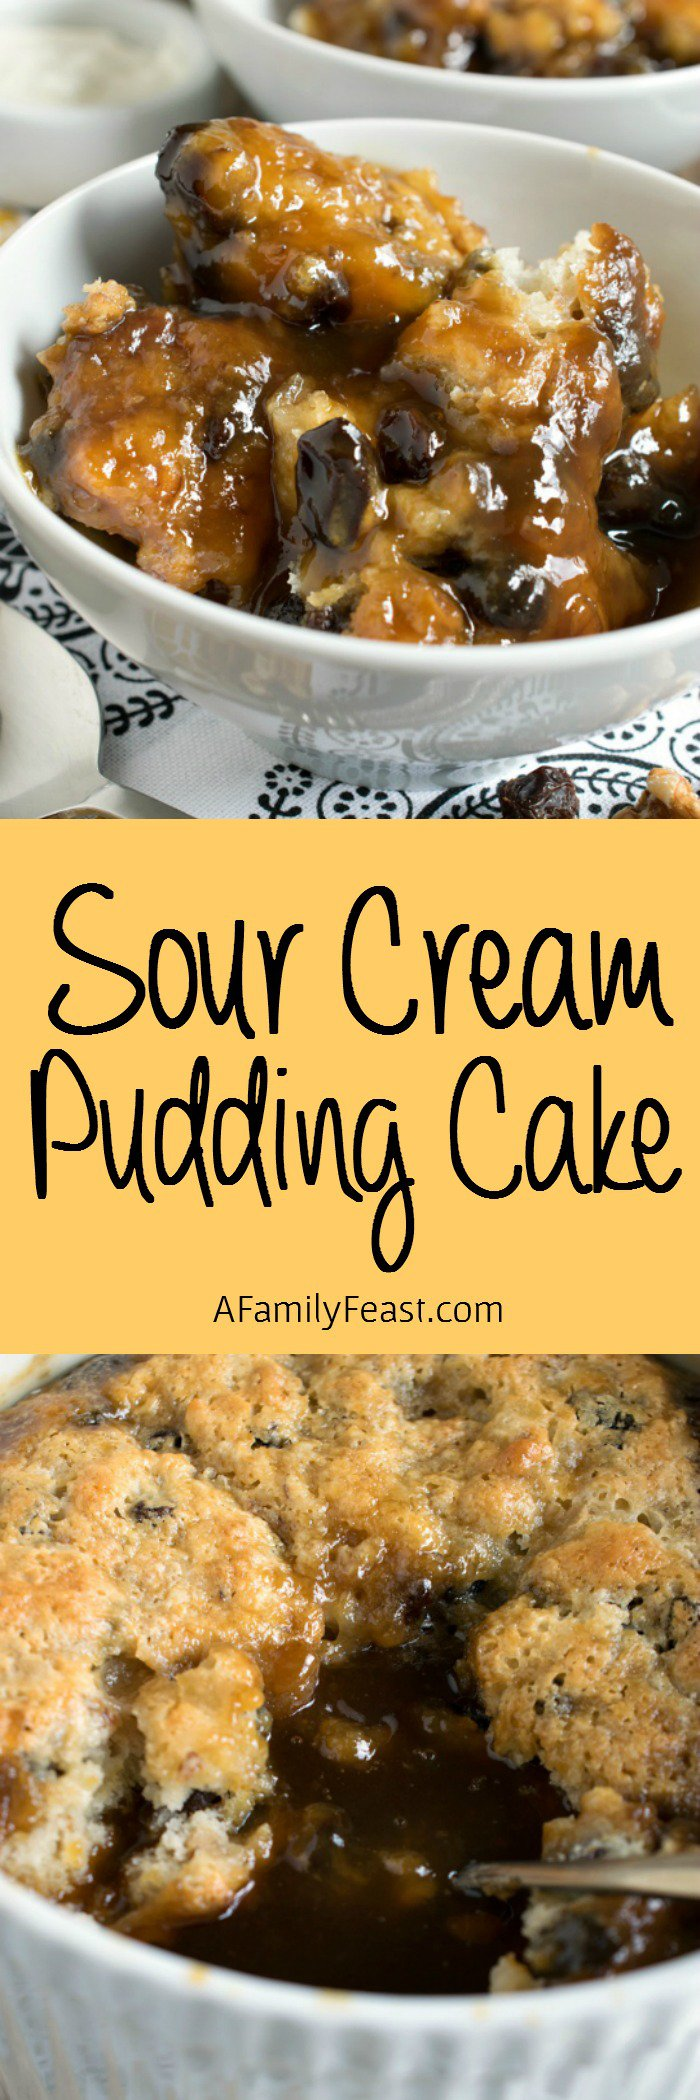 This Sour Cream Pudding Cake Bakes Up Light And Spongy On Top With A Rich Sweet Syrupy Caramel Raisi Pudding Cake Family Feast Recipes Dessert Recipes Easy